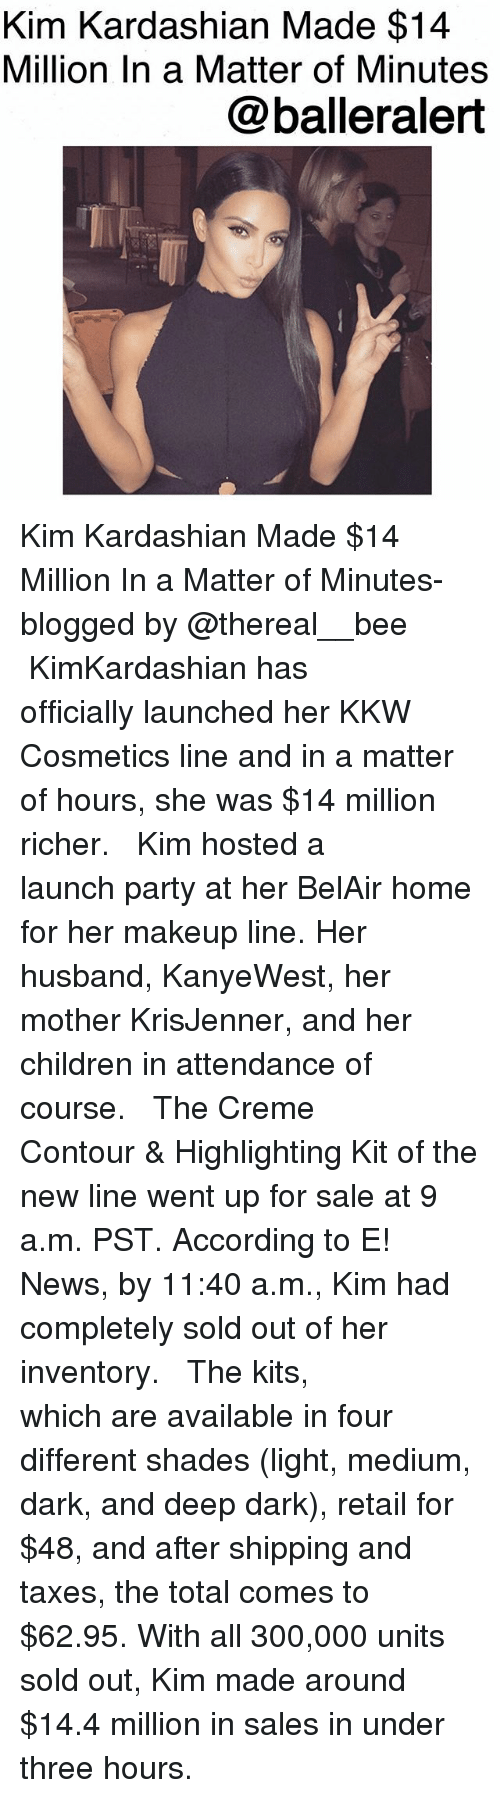 Children, Kim Kardashian, and Makeup: Kim Kardashian Made $14  Million In a Matter of Minutes  @balleralert Kim Kardashian Made $14 Million In a Matter of Minutes-blogged by @thereal__bee ⠀⠀⠀⠀⠀⠀⠀ ⠀⠀⠀⠀⠀⠀⠀ KimKardashian has officially launched her KKW Cosmetics line and in a matter of hours, she was $14 million richer. ⠀⠀⠀⠀⠀⠀⠀ ⠀⠀⠀⠀⠀⠀⠀ Kim hosted a launch party at her BelAir home for her makeup line. Her husband, KanyeWest, her mother KrisJenner, and her children in attendance of course. ⠀⠀⠀⠀⠀⠀⠀ ⠀⠀⠀⠀⠀⠀⠀ The Creme Contour & Highlighting Kit of the new line went up for sale at 9 a.m. PST. According to E! News, by 11:40 a.m., Kim had completely sold out of her inventory. ⠀⠀⠀⠀⠀⠀⠀ ⠀⠀⠀⠀⠀⠀⠀ The kits, which are available in four different shades (light, medium, dark, and deep dark), retail for $48, and after shipping and taxes, the total comes to $62.95. With all 300,000 units sold out, Kim made around $14.4 million in sales in under three hours.